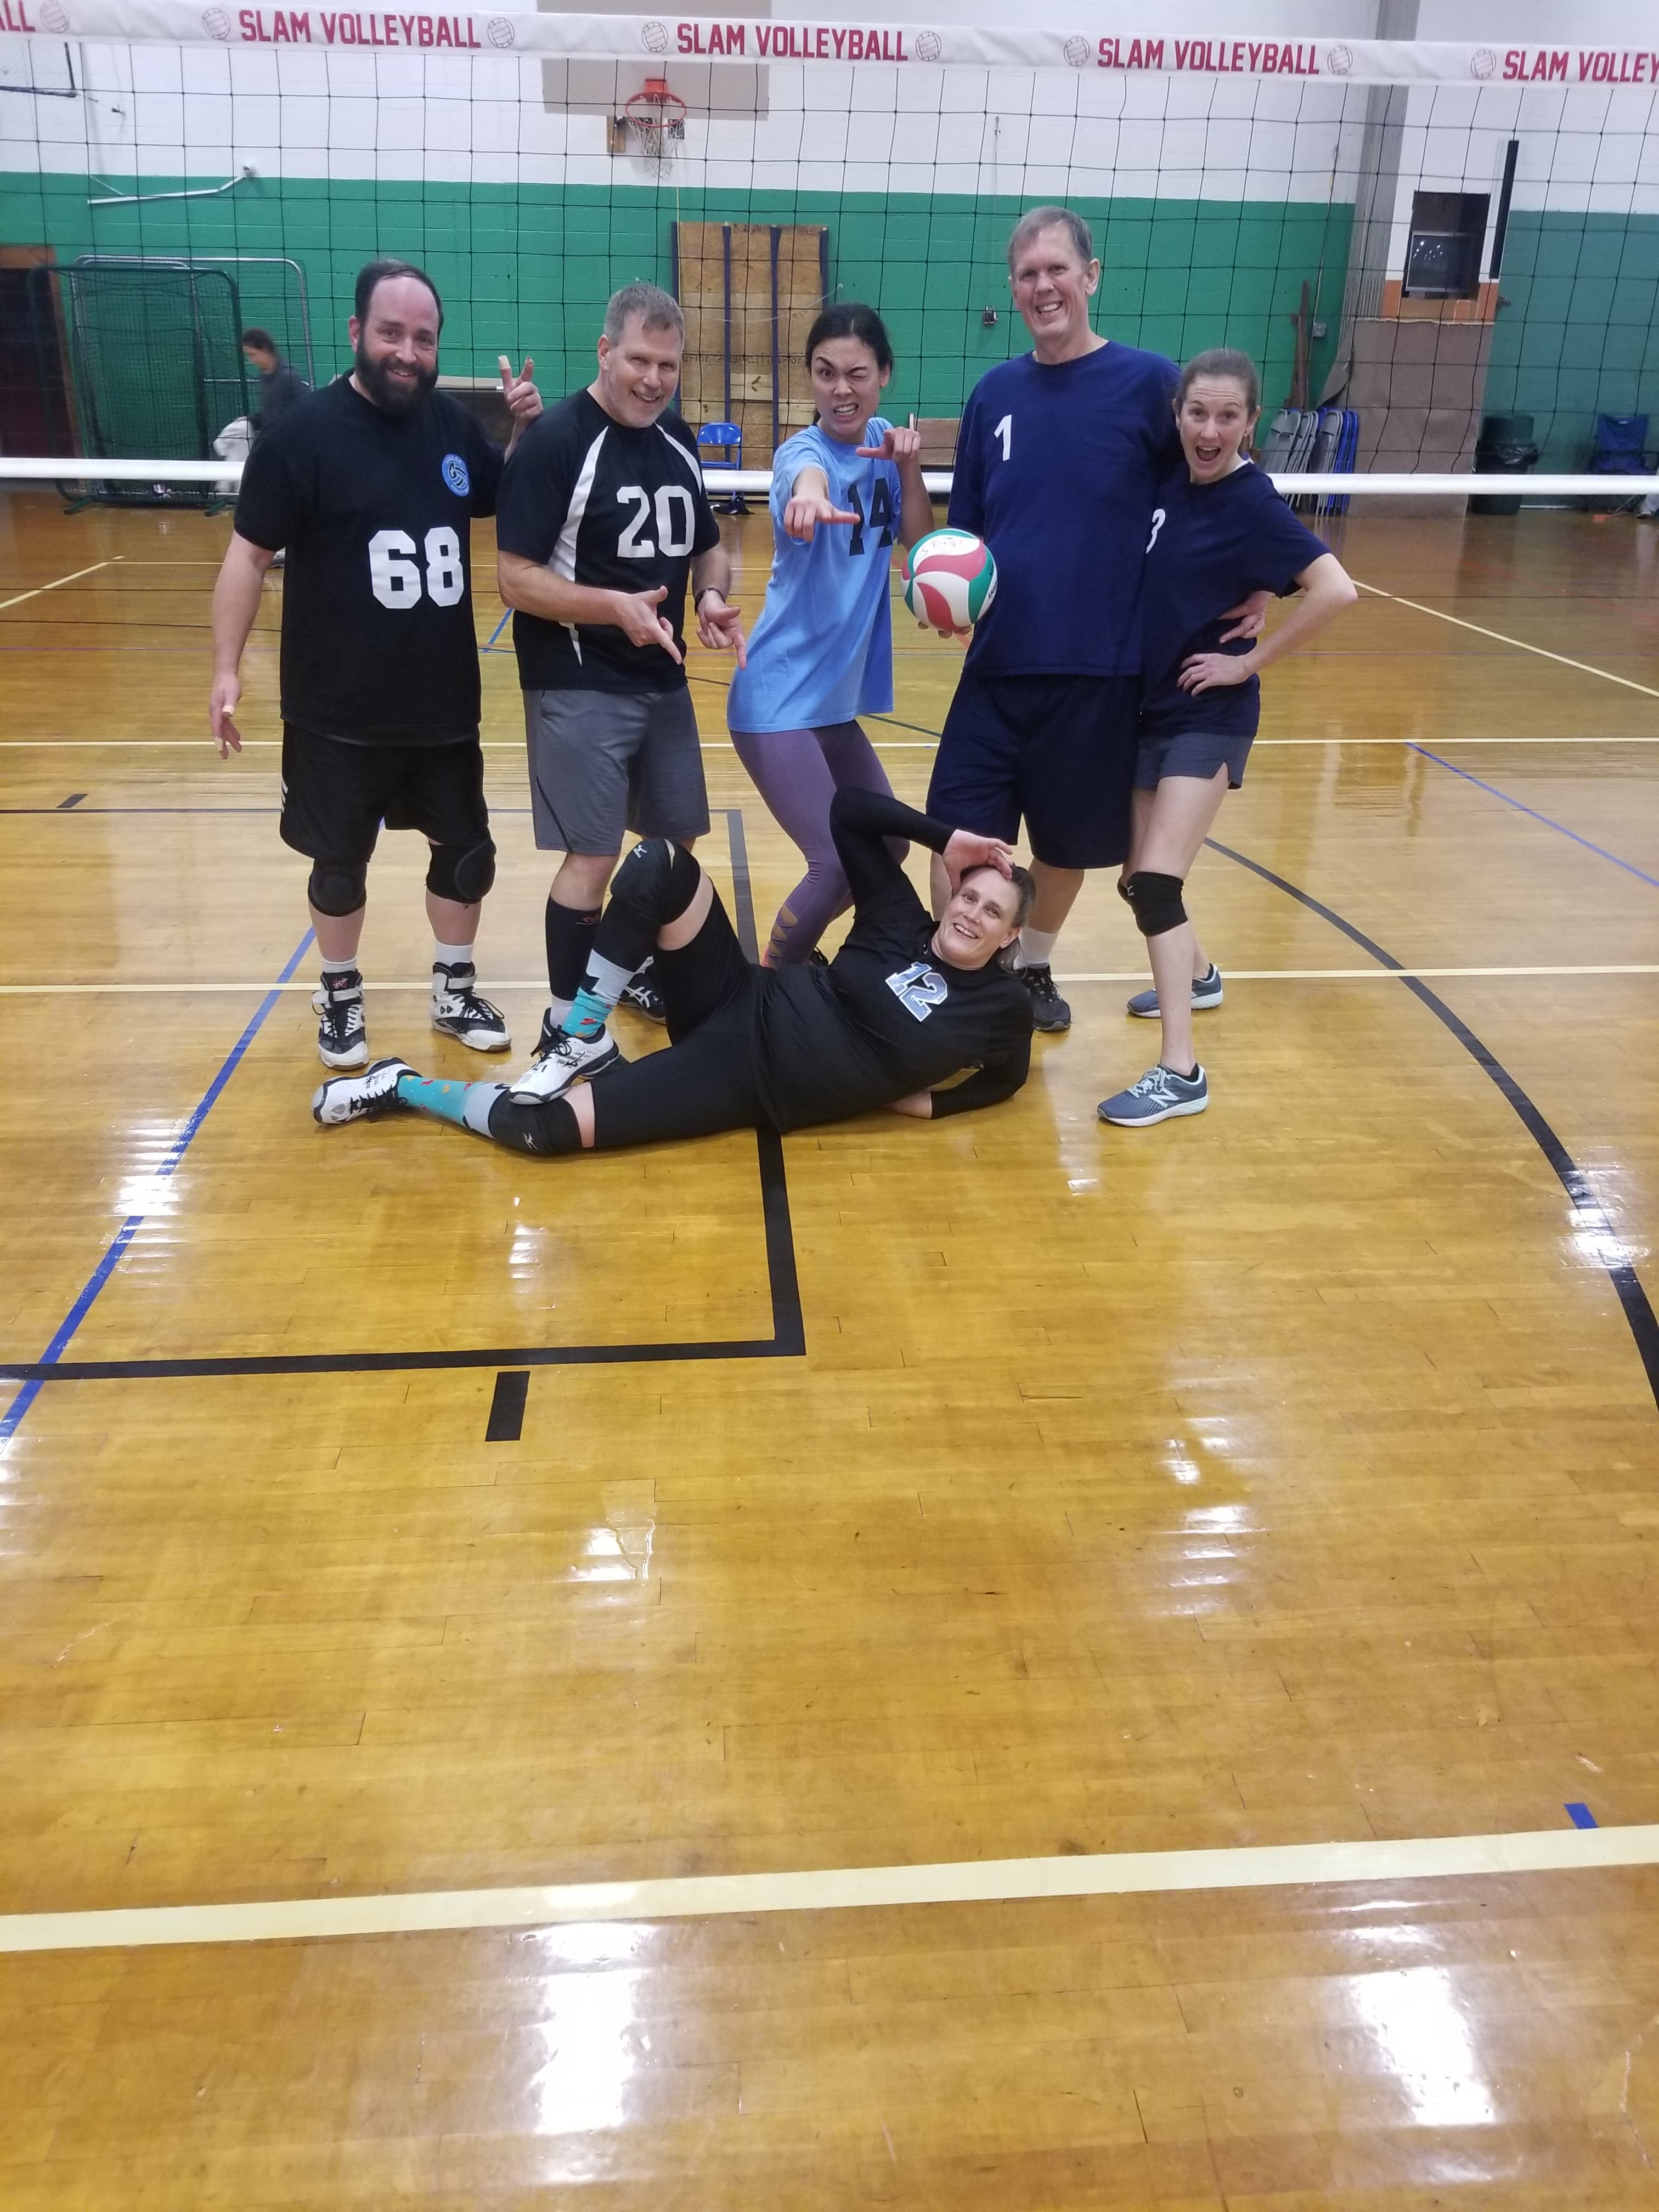 Funky Bunch defeats Team Corgi in the RCO C- in Clinton